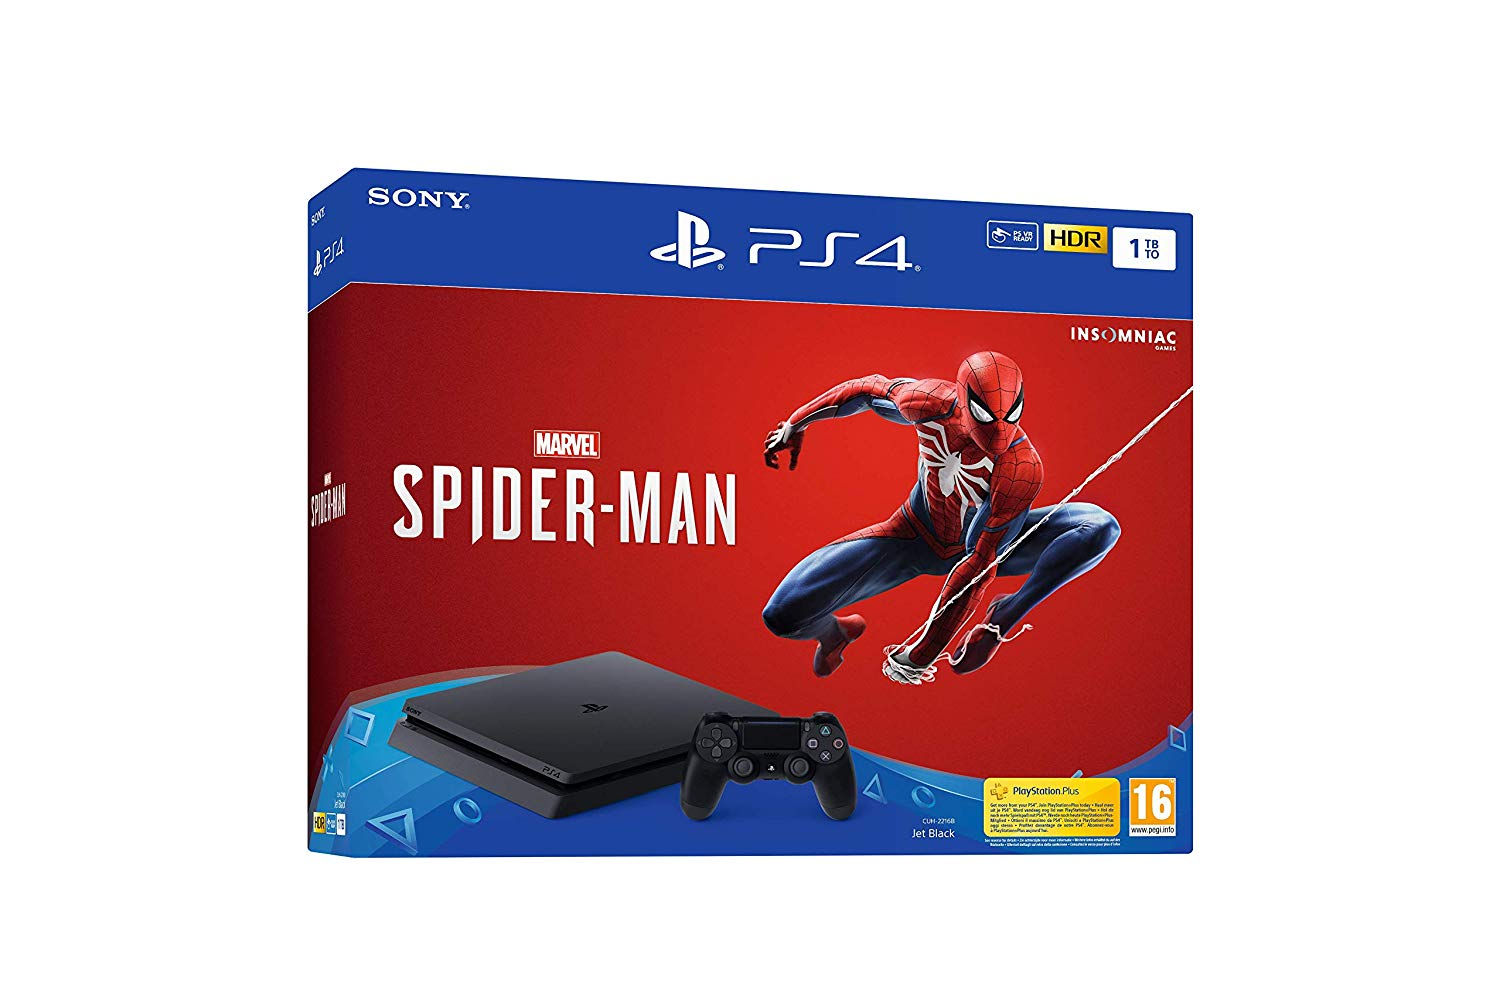 PS4 SLIM SPIDERMAN REGALA JUEGOS